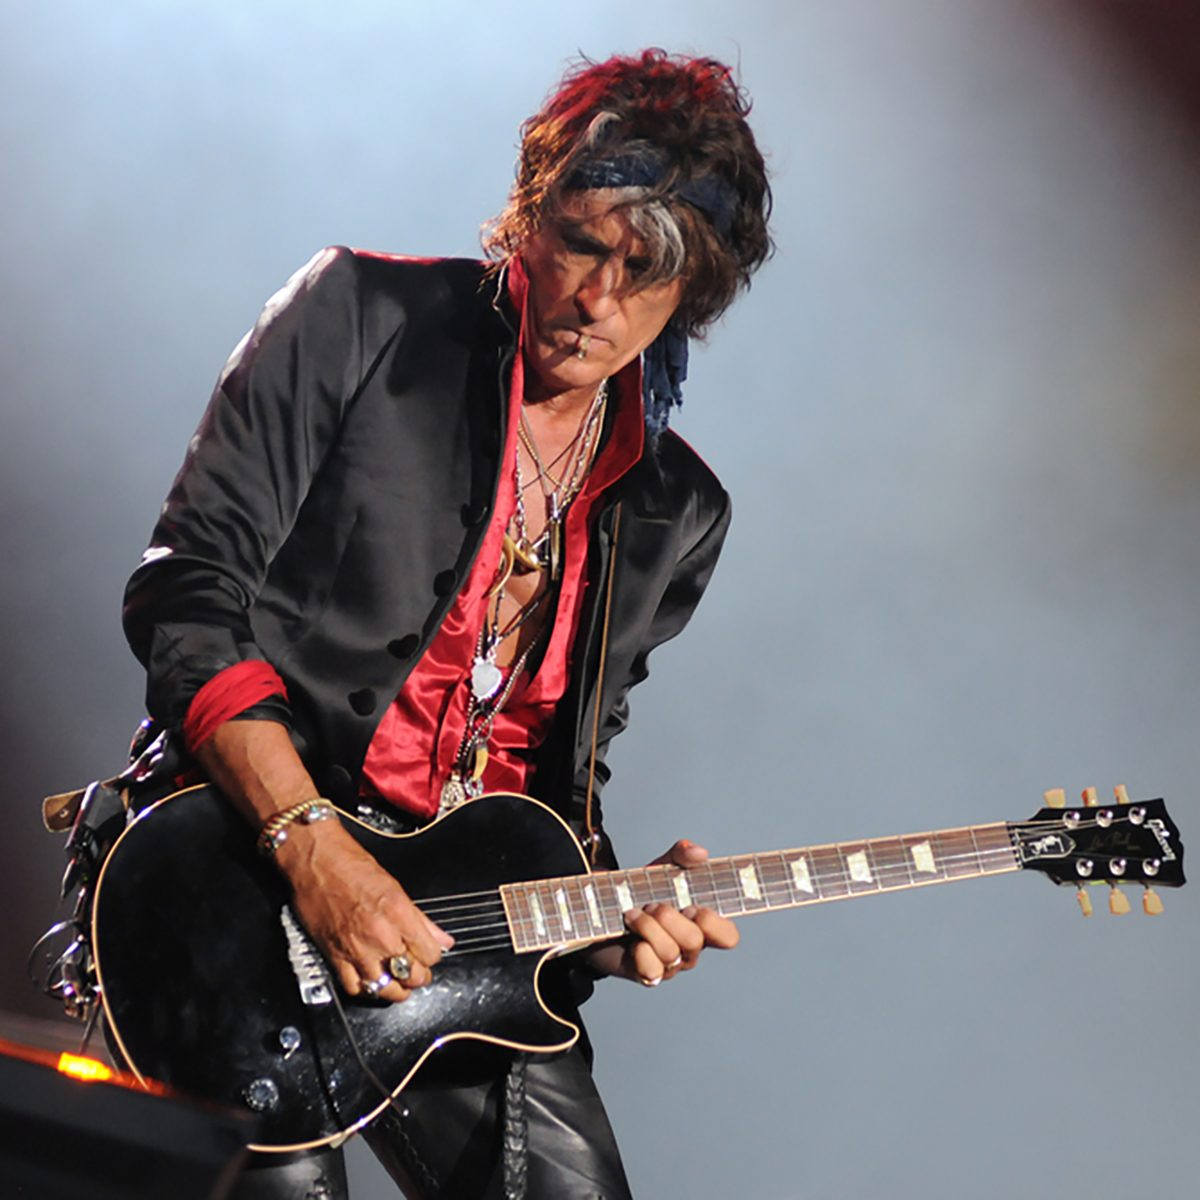 Guitarists Joe Perry during their concert of the band Hollywood Vampires at Rock in Rio 2015 in Rio de Janeiro, Brazil